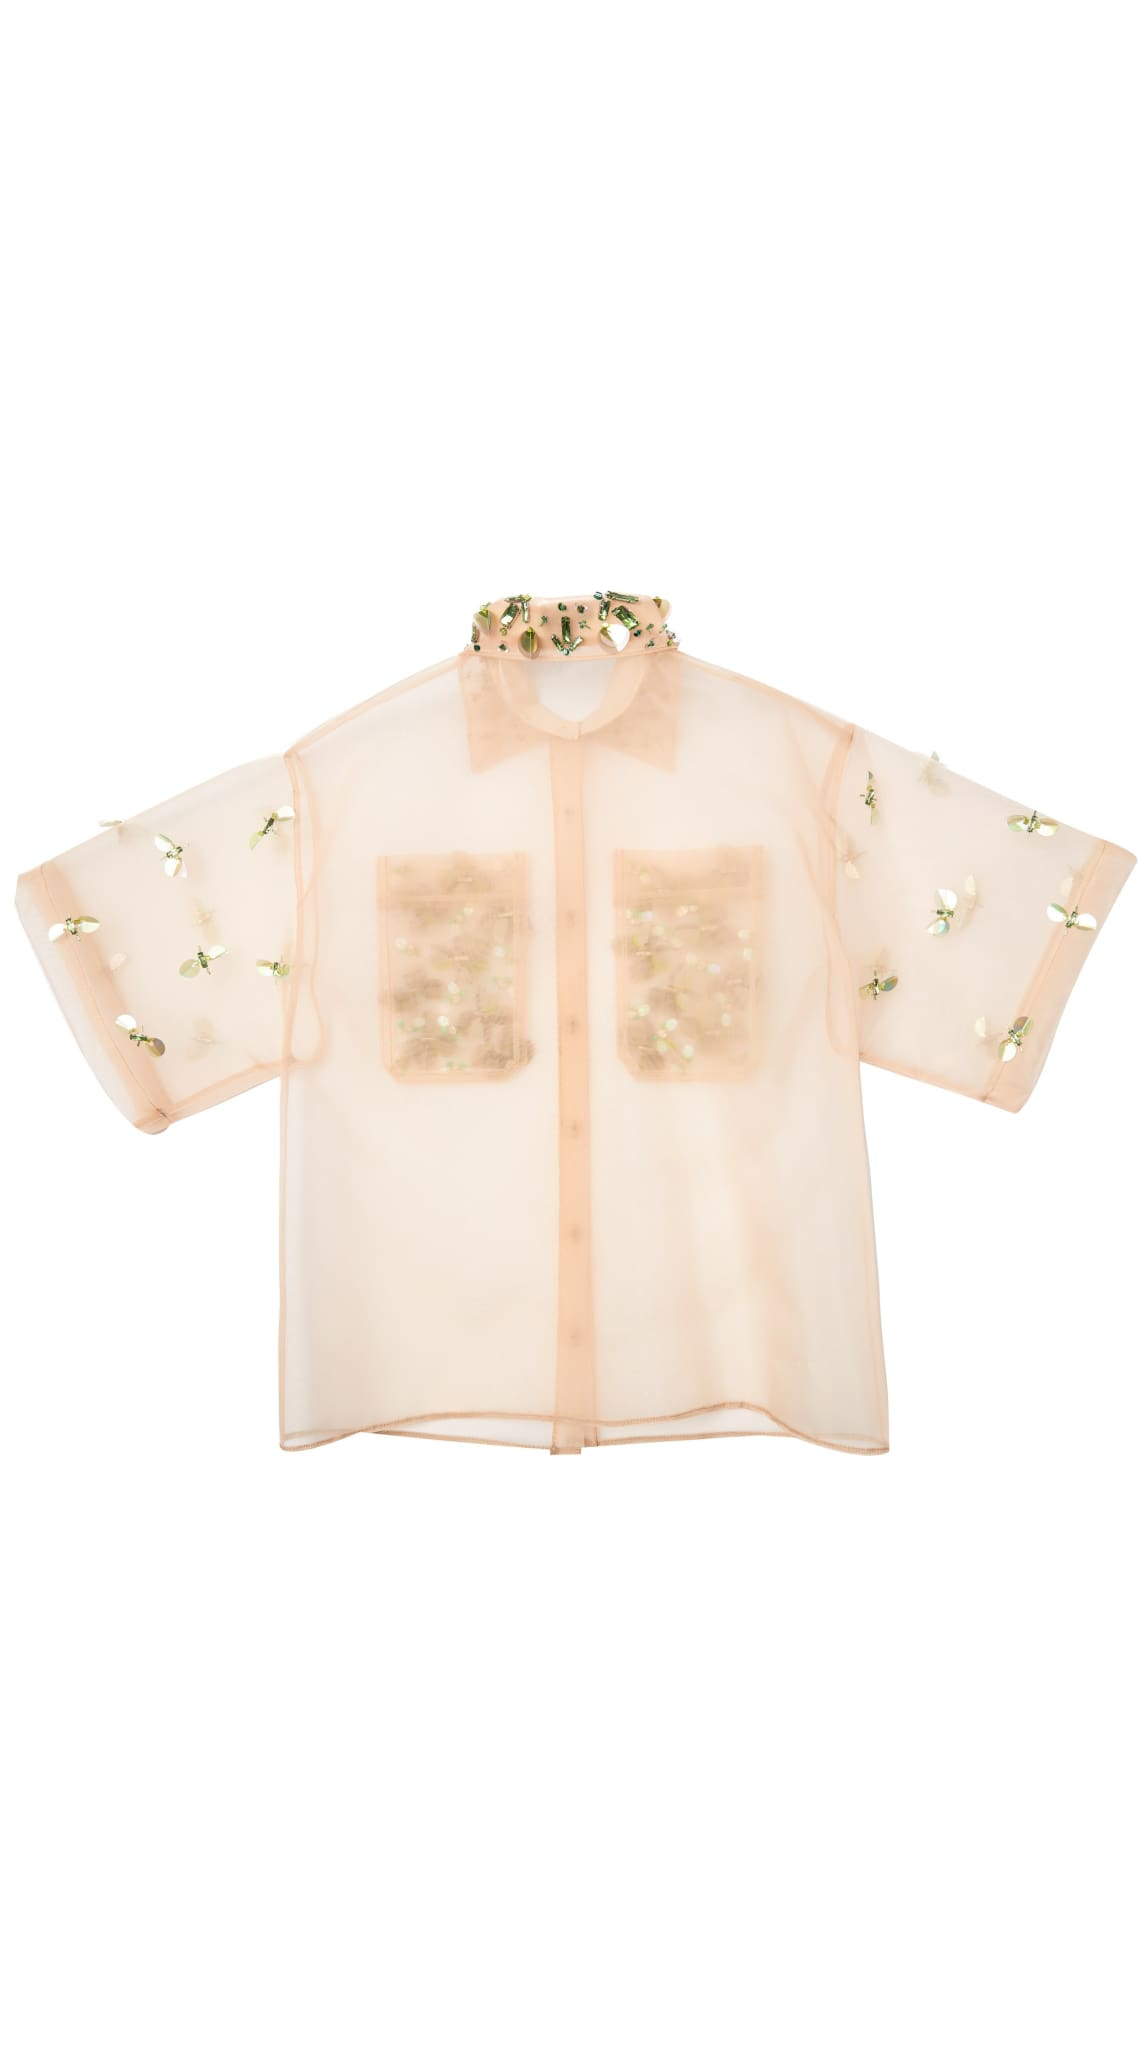 Embellished Bejeweled Oversized Beige Nude Button-Down by Meghan Hughes | Nineteenth Amendment